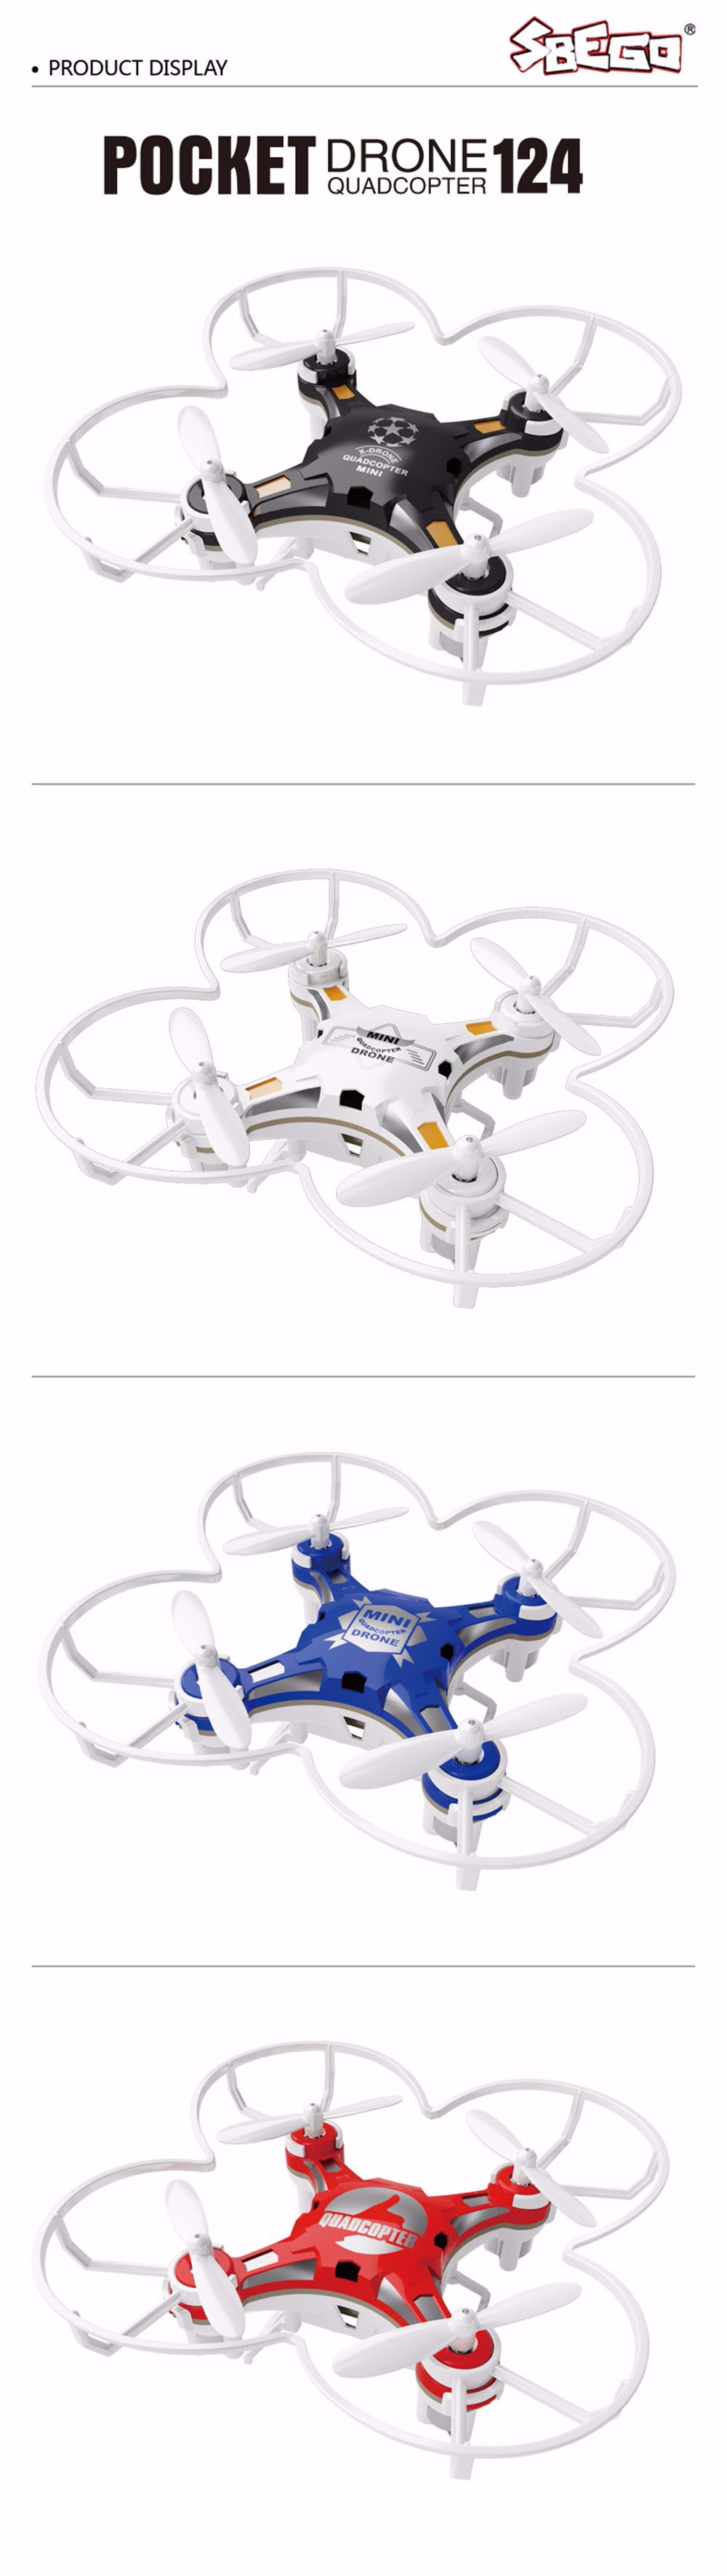 SBEGO FQ777-124 Mini Drone Micro Pocket 4CH 6Axis Gyro Switchable Controller RC Helicopter Kids Toys VS JJRC H37 H31 Quadcopter 14